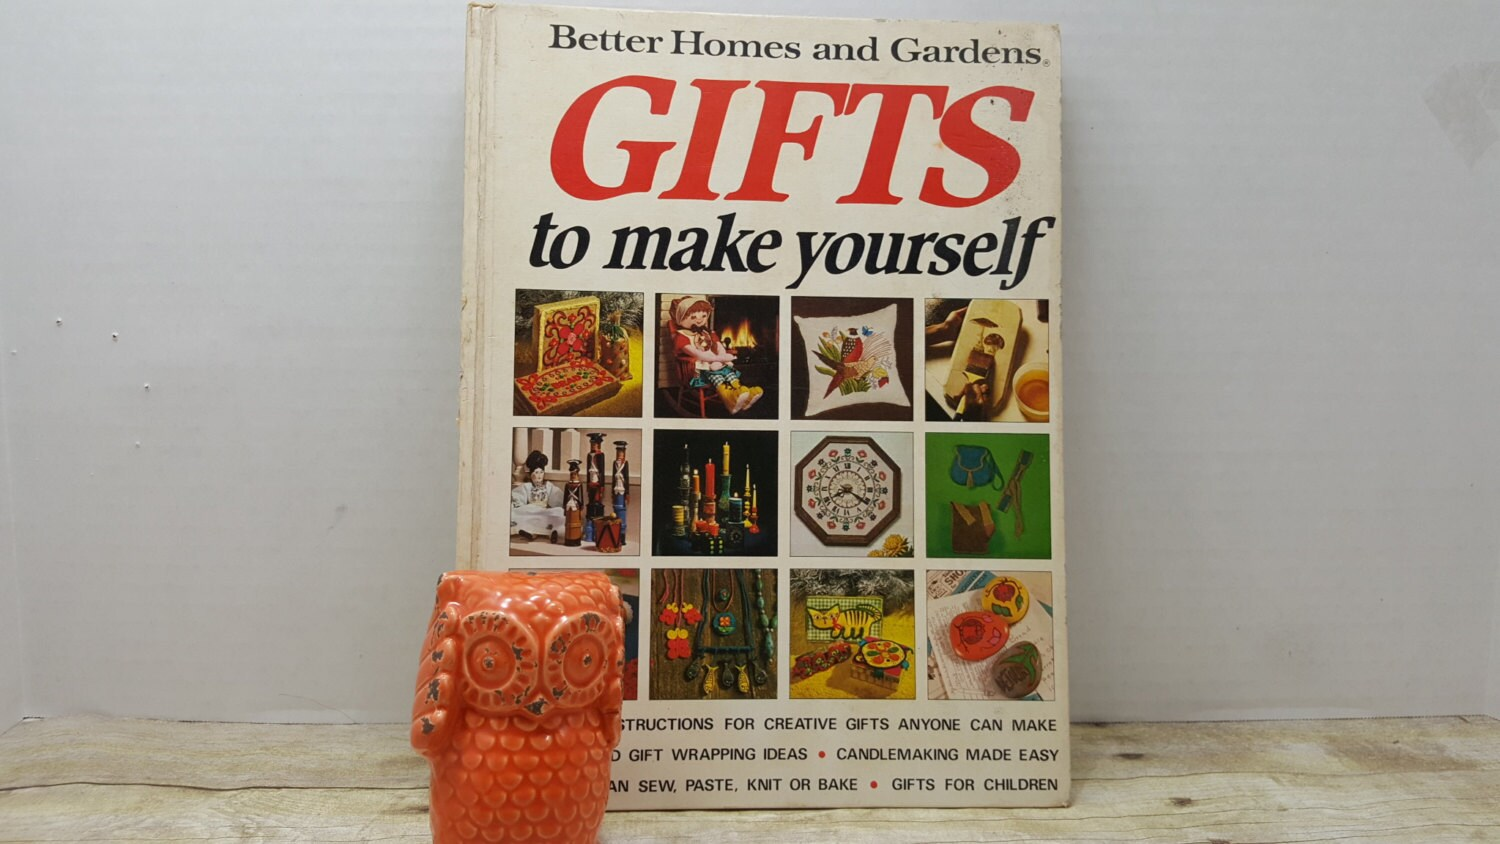 Gifts to make yourself better homes and gardens 1972 vintage craft 425 shipping solutioingenieria Choice Image